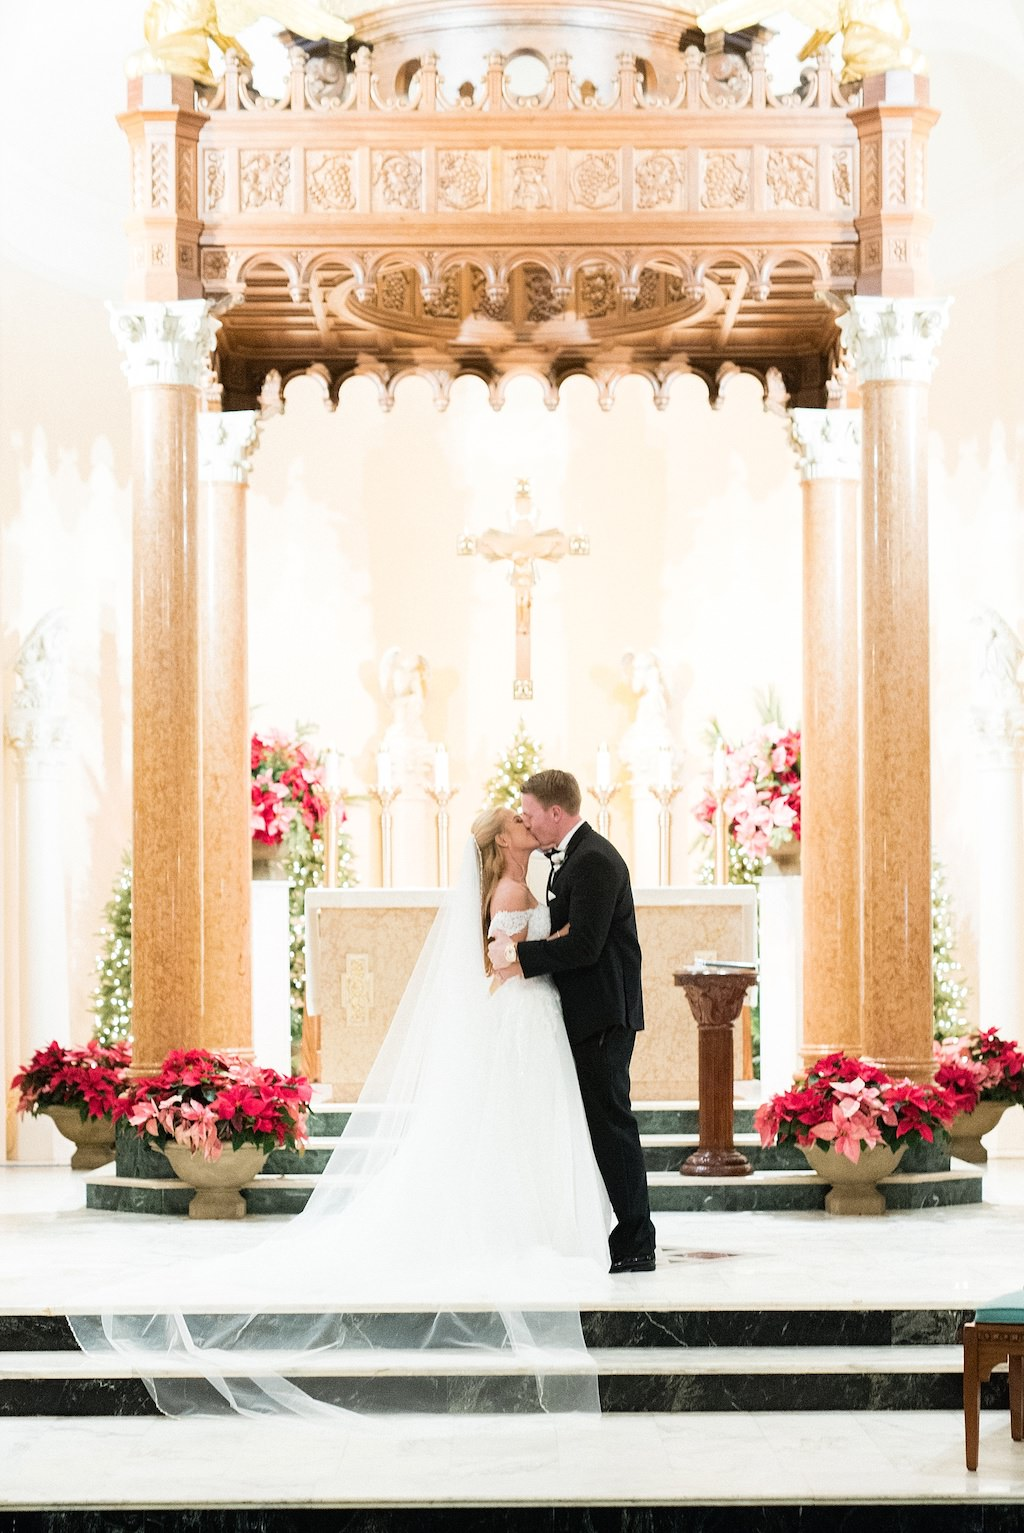 Winter Christmas Traditional Church Wedding Ceremony Bride and Groom Exchanging First Kiss Under Elegant Gold Arch, Bride Wearing Cathedral Veil | St. Petersburg Wedding Venue St. Mary Our Lady of Grace Catholic Church